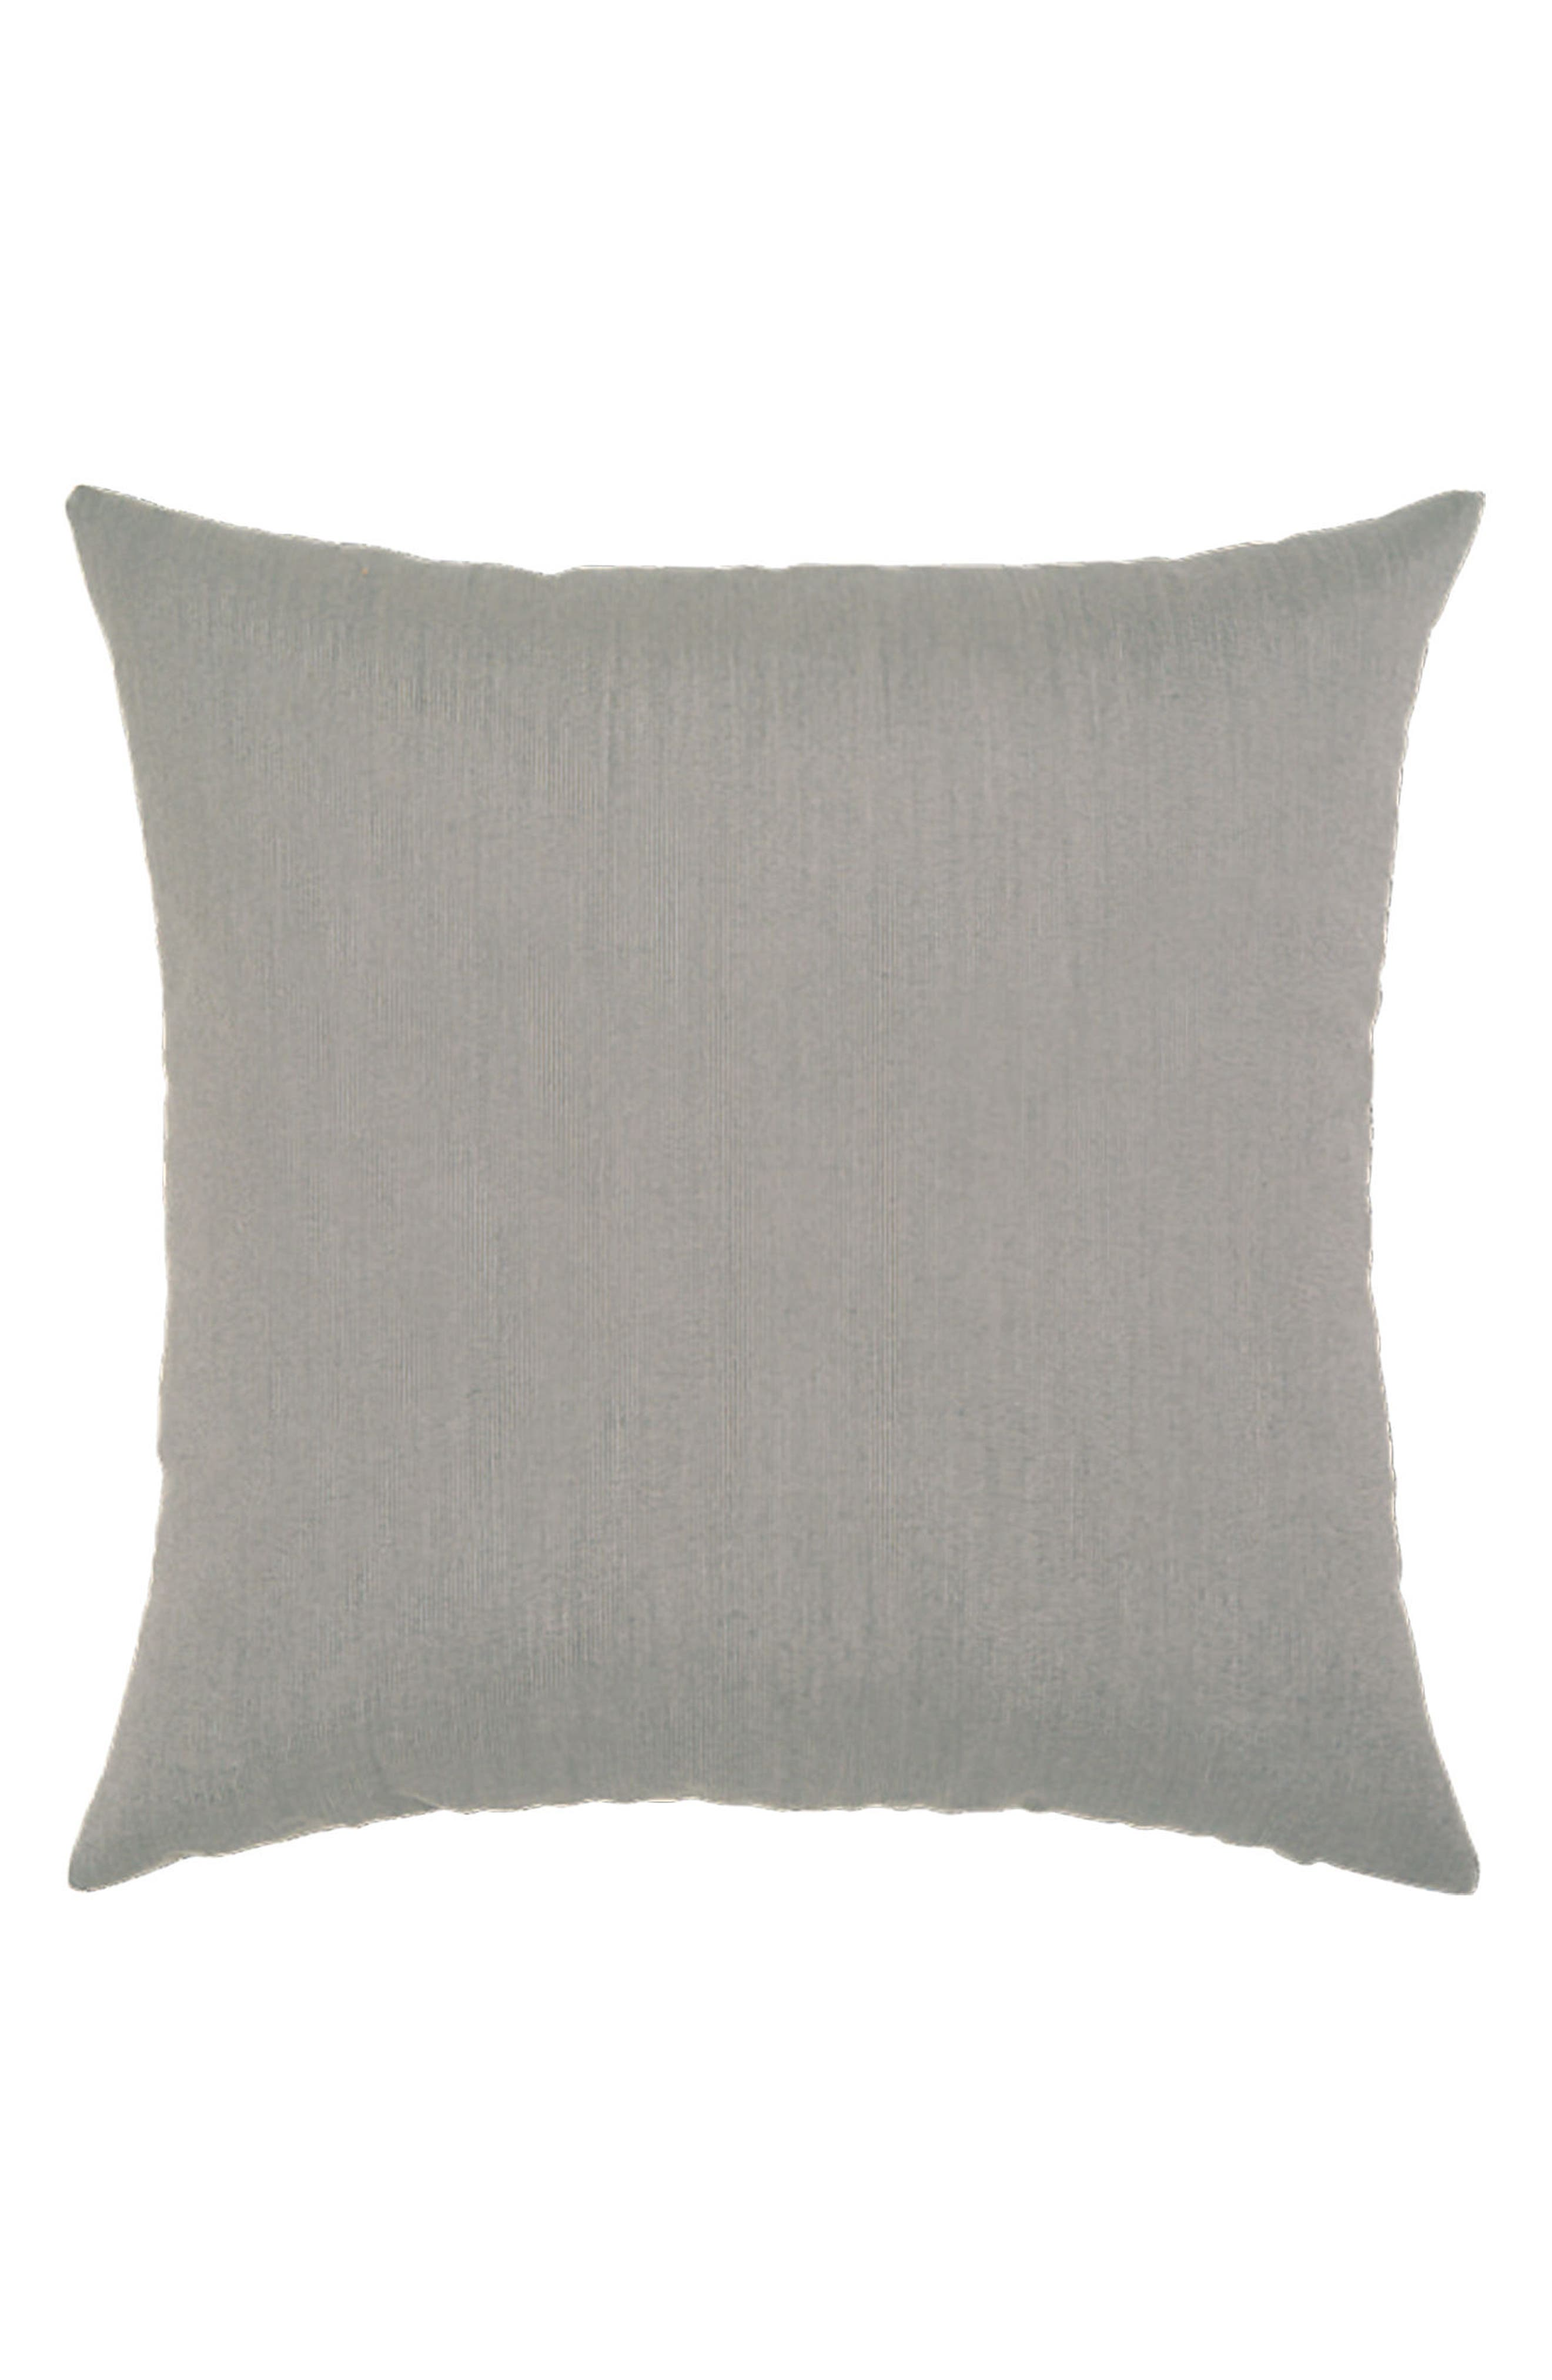 Basket Weave Indoor/Outdoor Accent Pillow,                             Alternate thumbnail 2, color,                             GREY